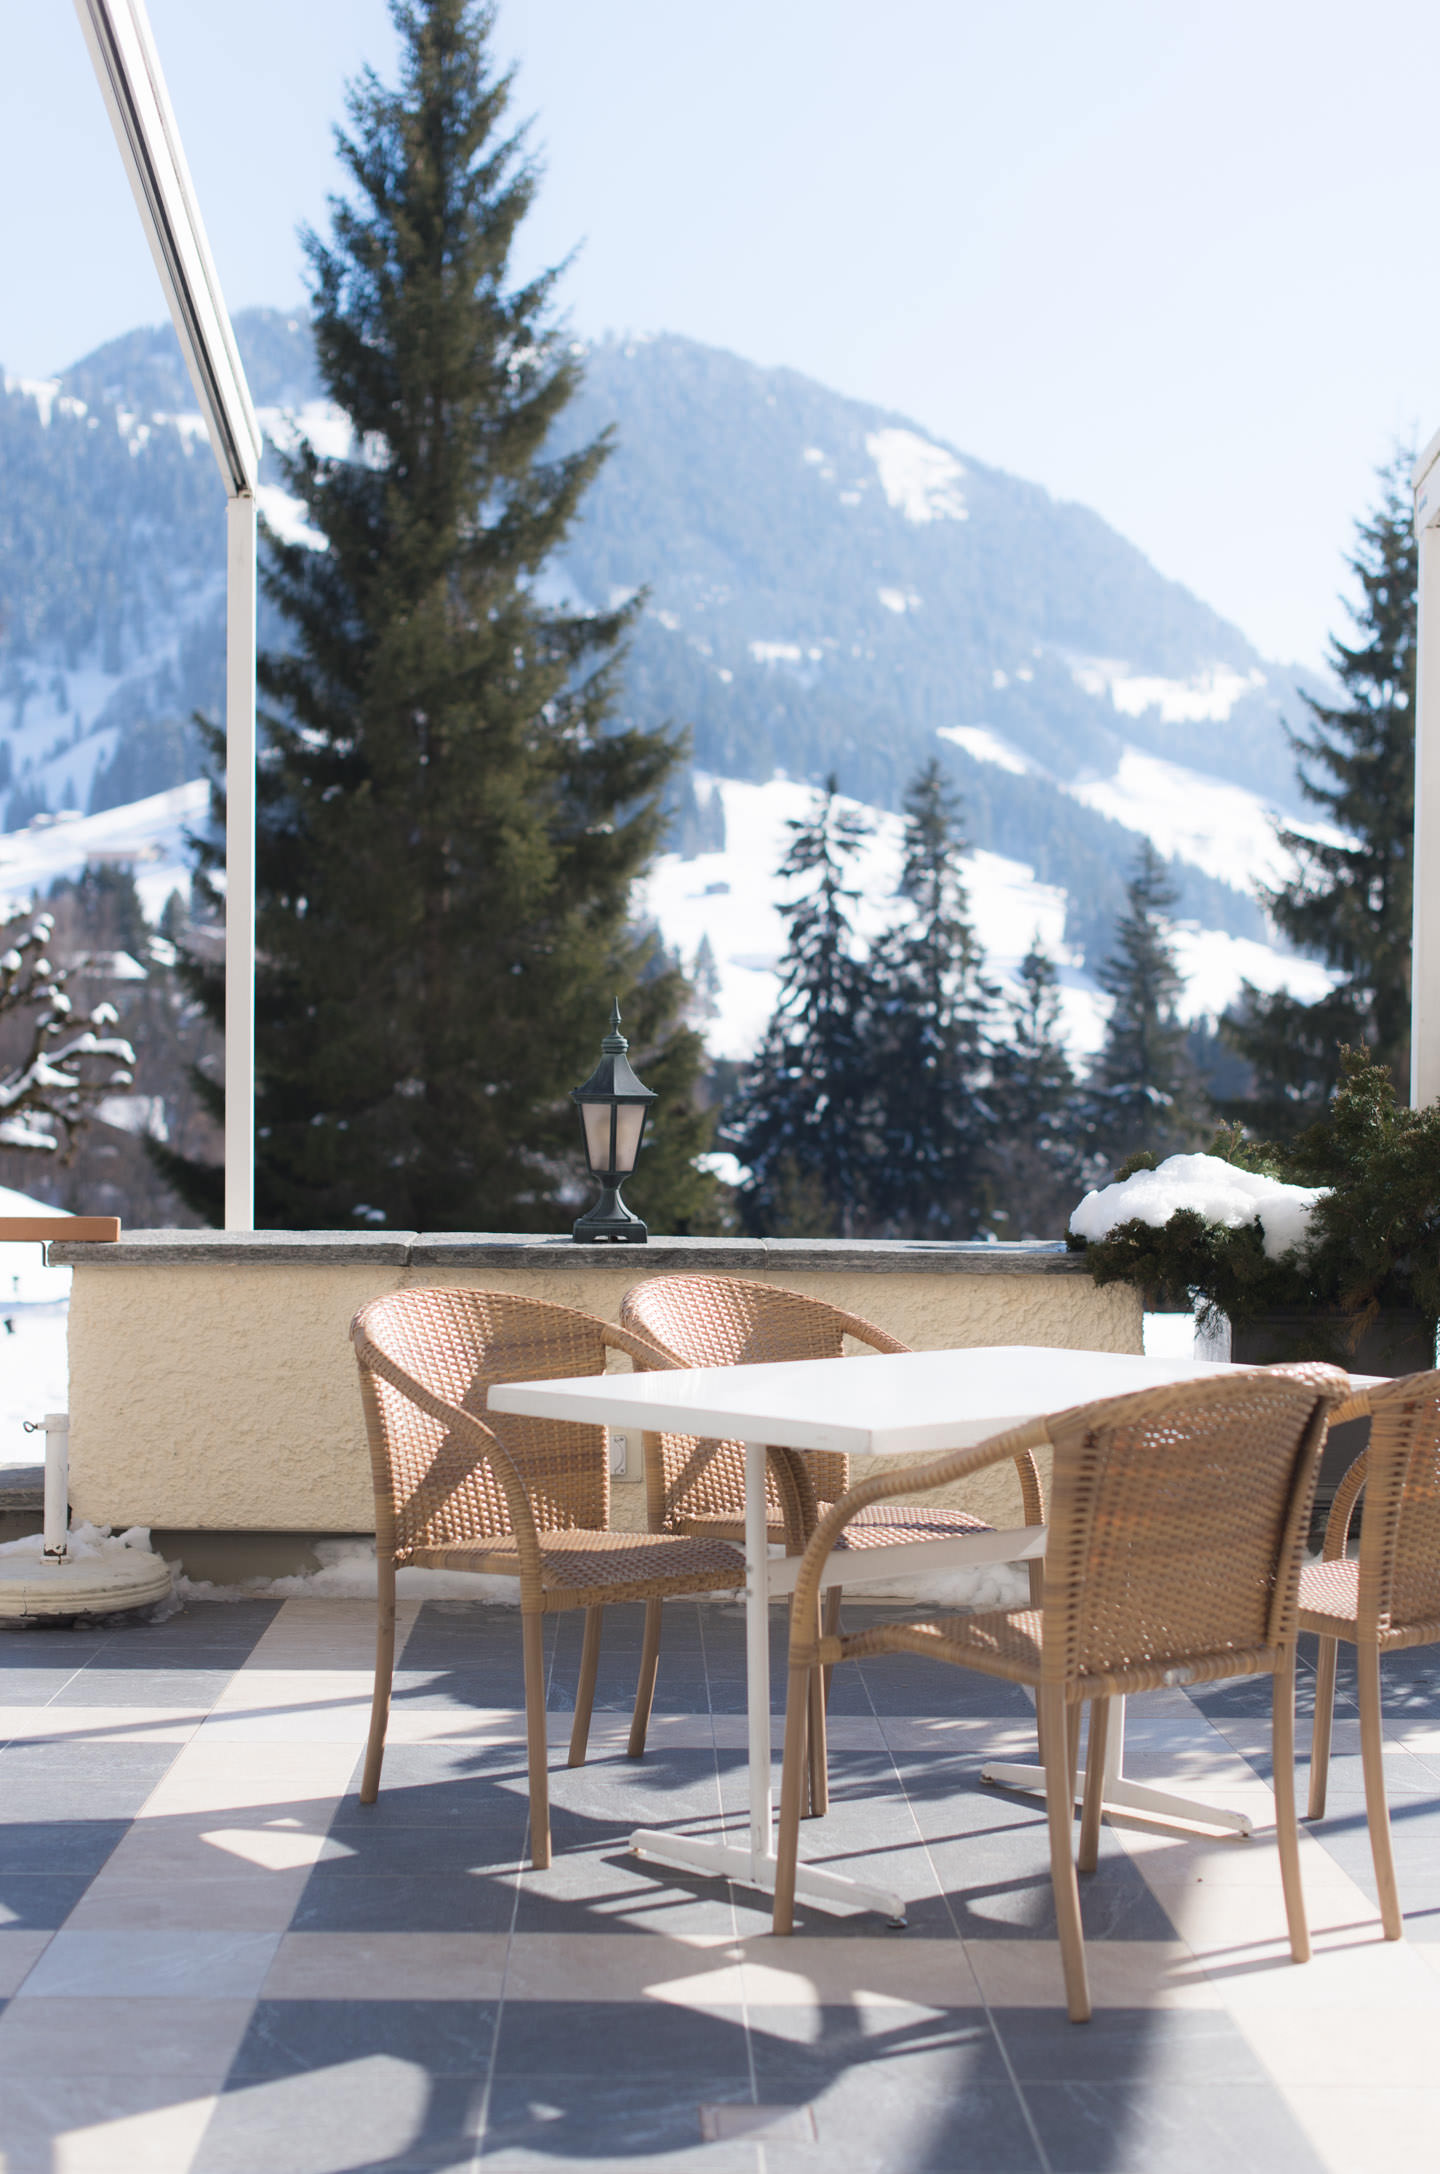 Blog-Mode-And-The-City-Lifestyle-Parenthese-Enchantee-Gstaad-Suisse-Glacier-3000-restaurant-altitude-4